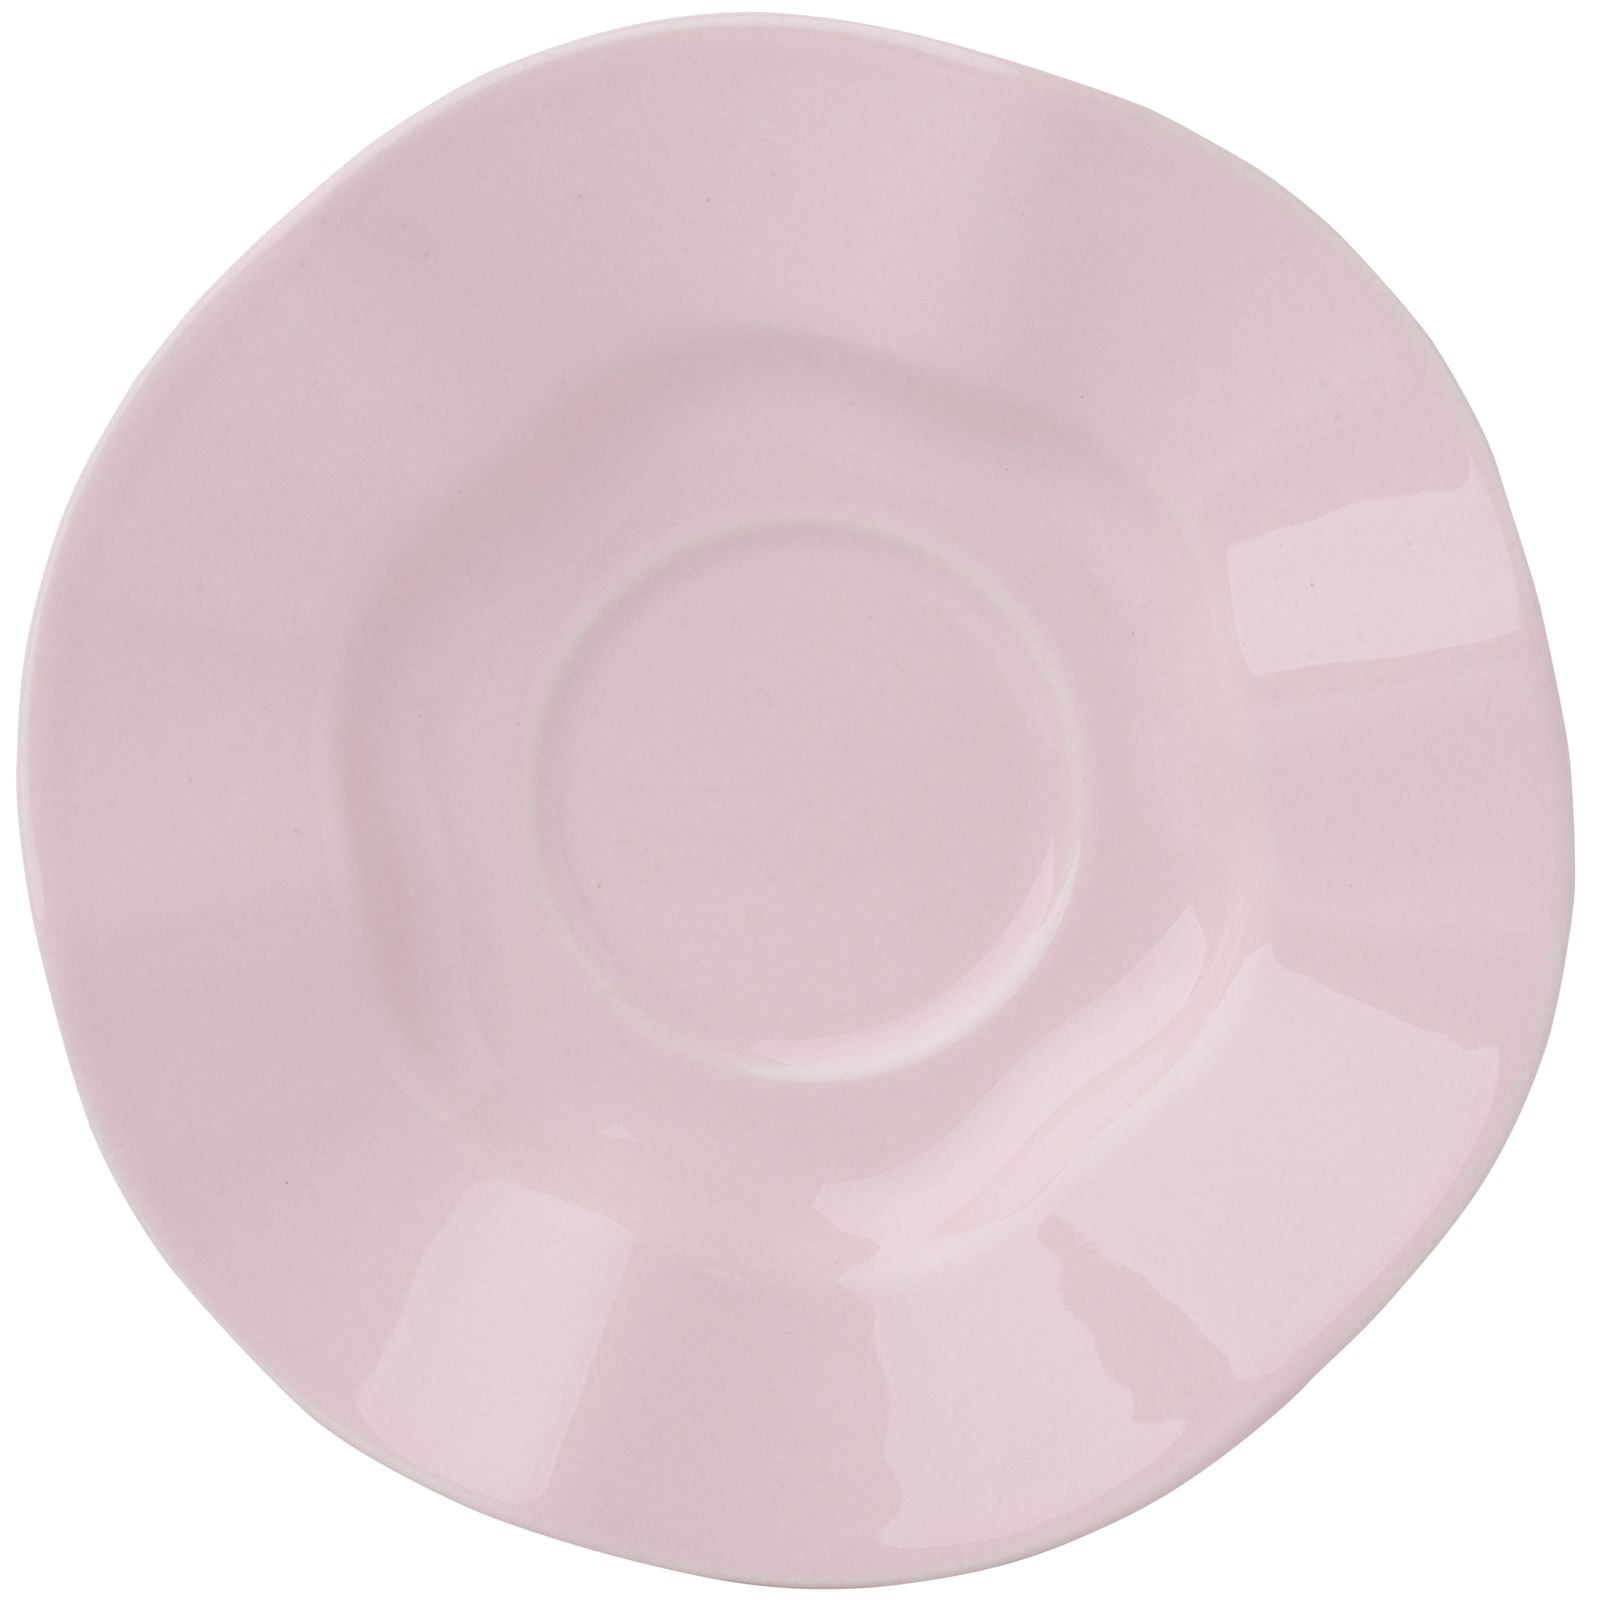 Fat Diana Rustic Pink 15 cm AMBITION